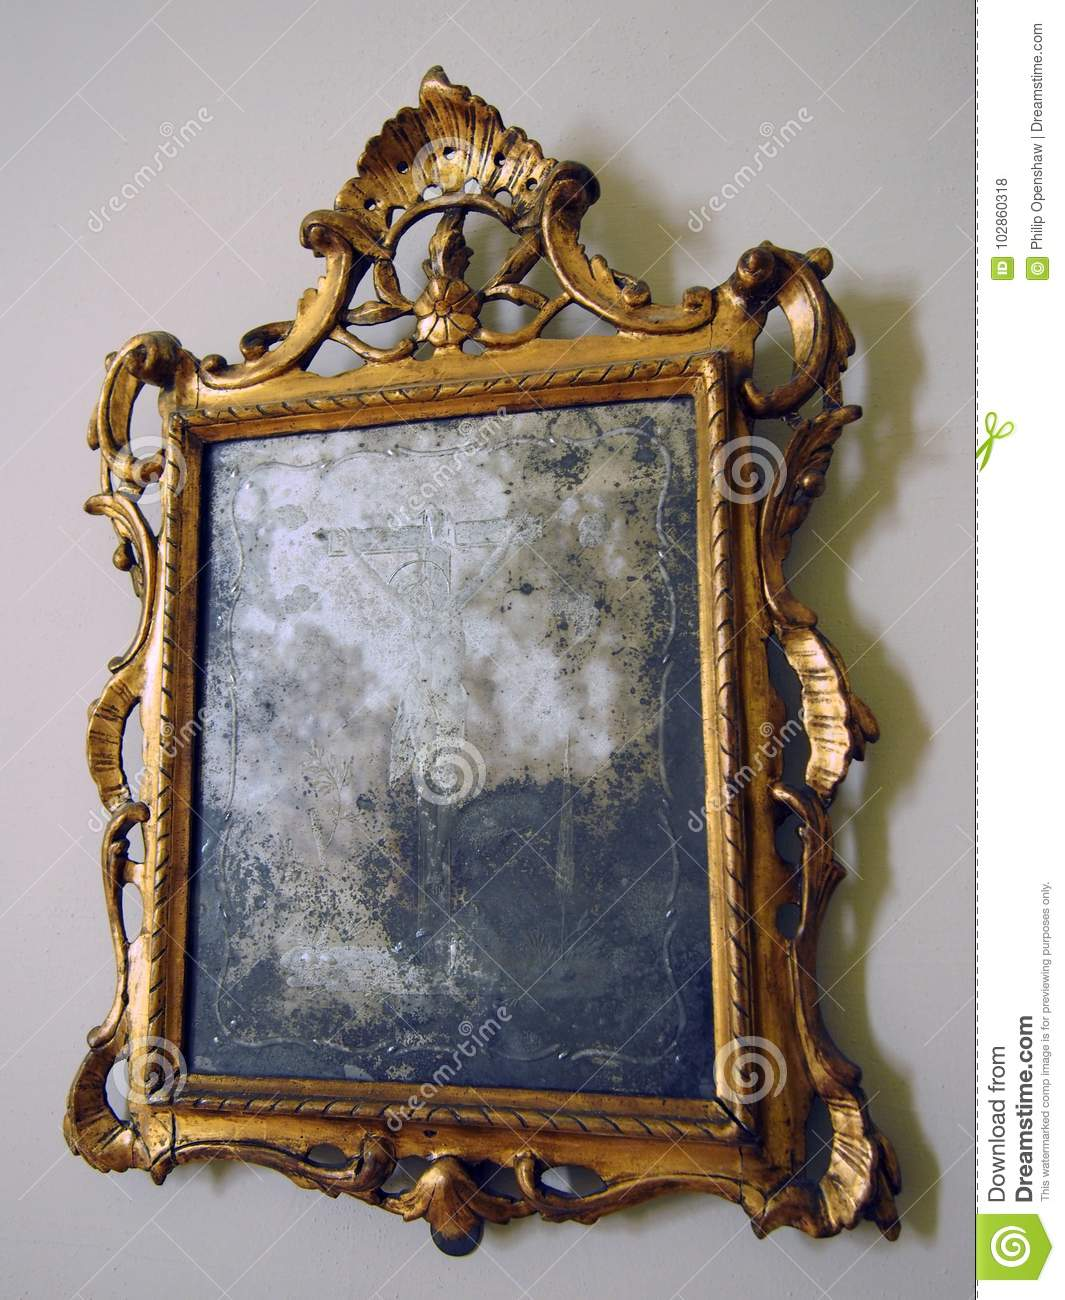 Old Tarnished Gold Framed Mirror With Ornate Baroque Details Stock Photo Image Of Mirror Frame 102860318